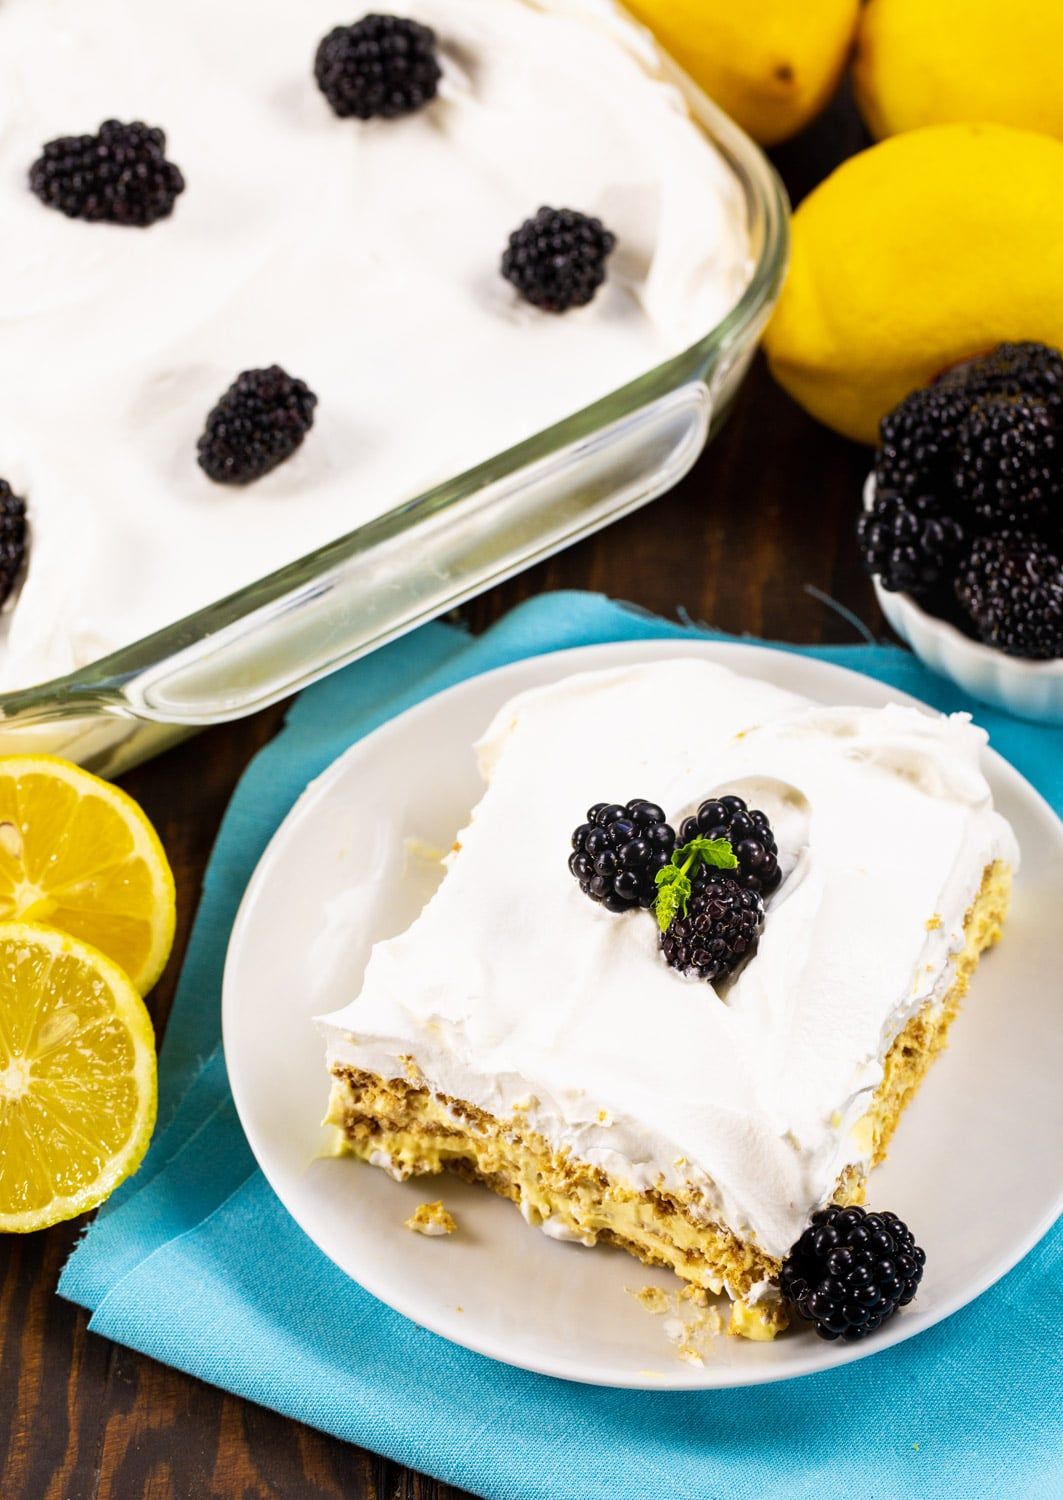 Slice of Icebox Cake on a plate surrounded by lemons and rest of the cake.